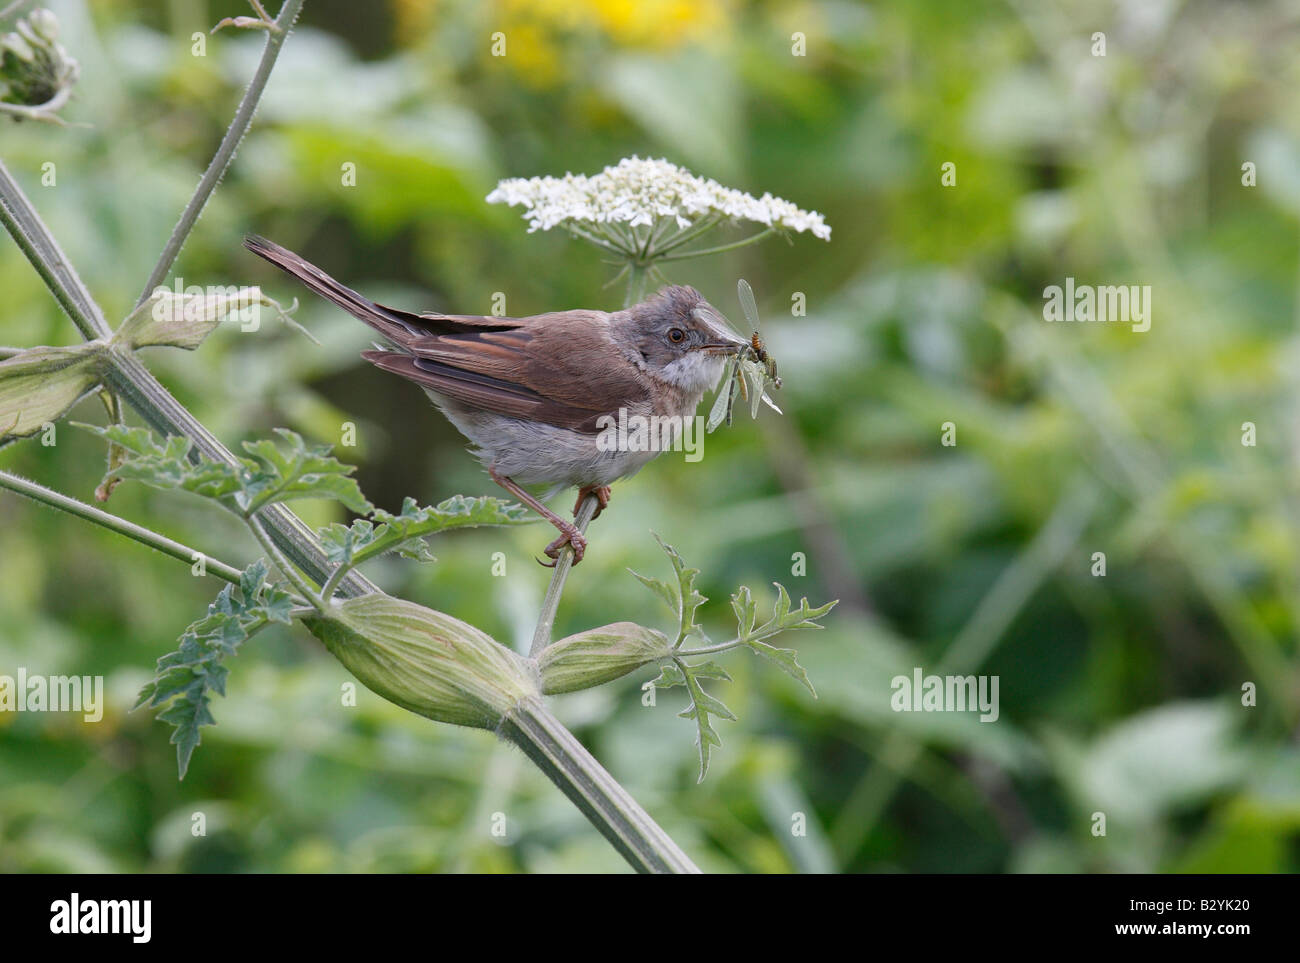 Female Whitethroat collecting food for nestlings in nearby nest - Stock Image